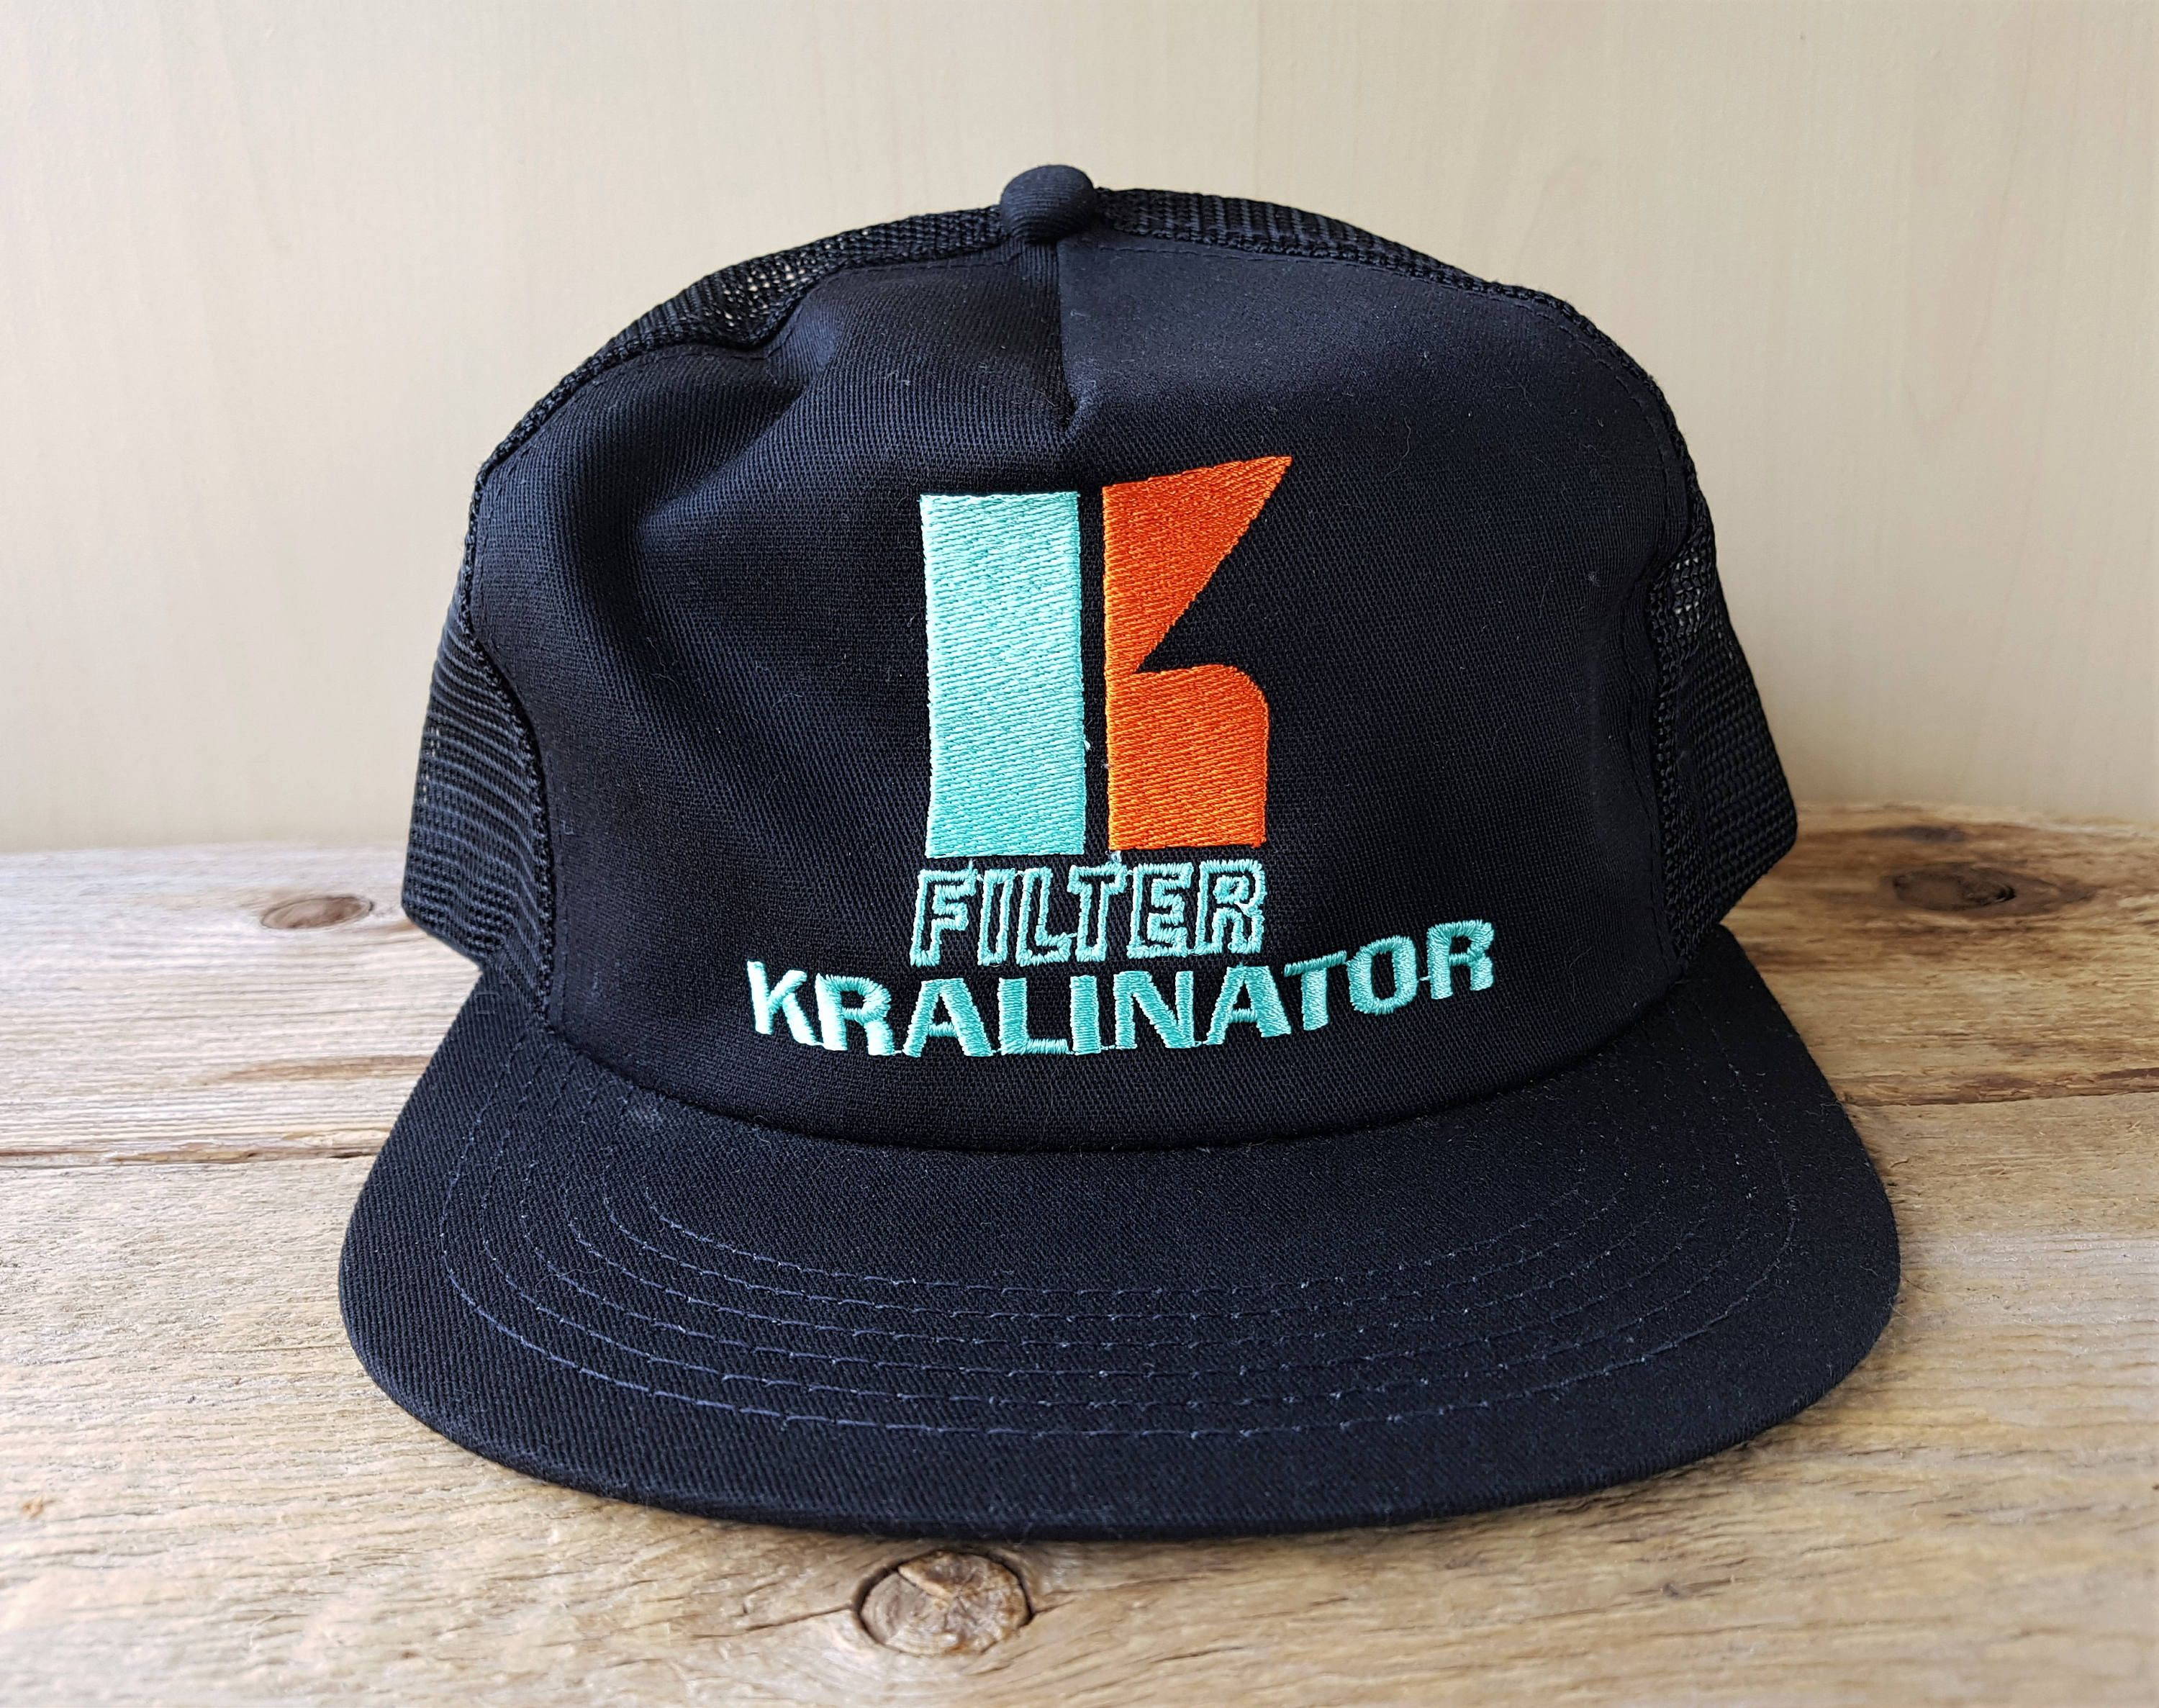 KRALINATOR FILTER *Reserved* Original Vtg 80s Black Mesh